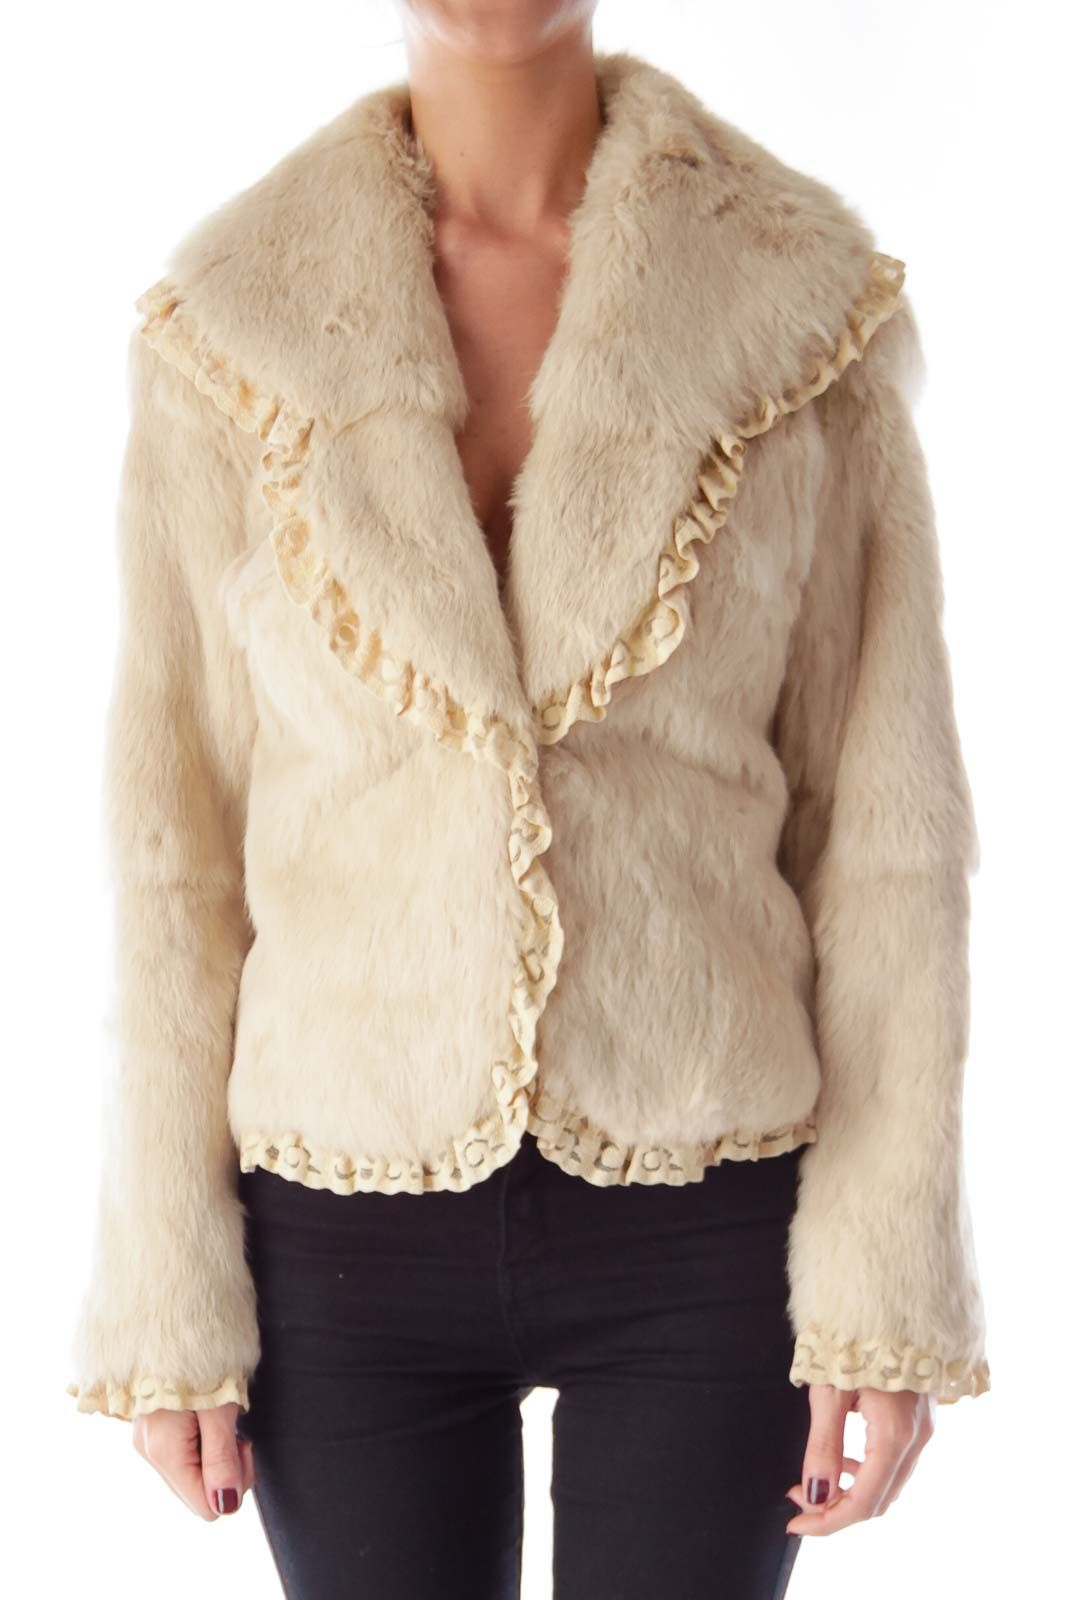 Cozy up in fur Cream Fur and Lace Jacket by Sheri Bodell